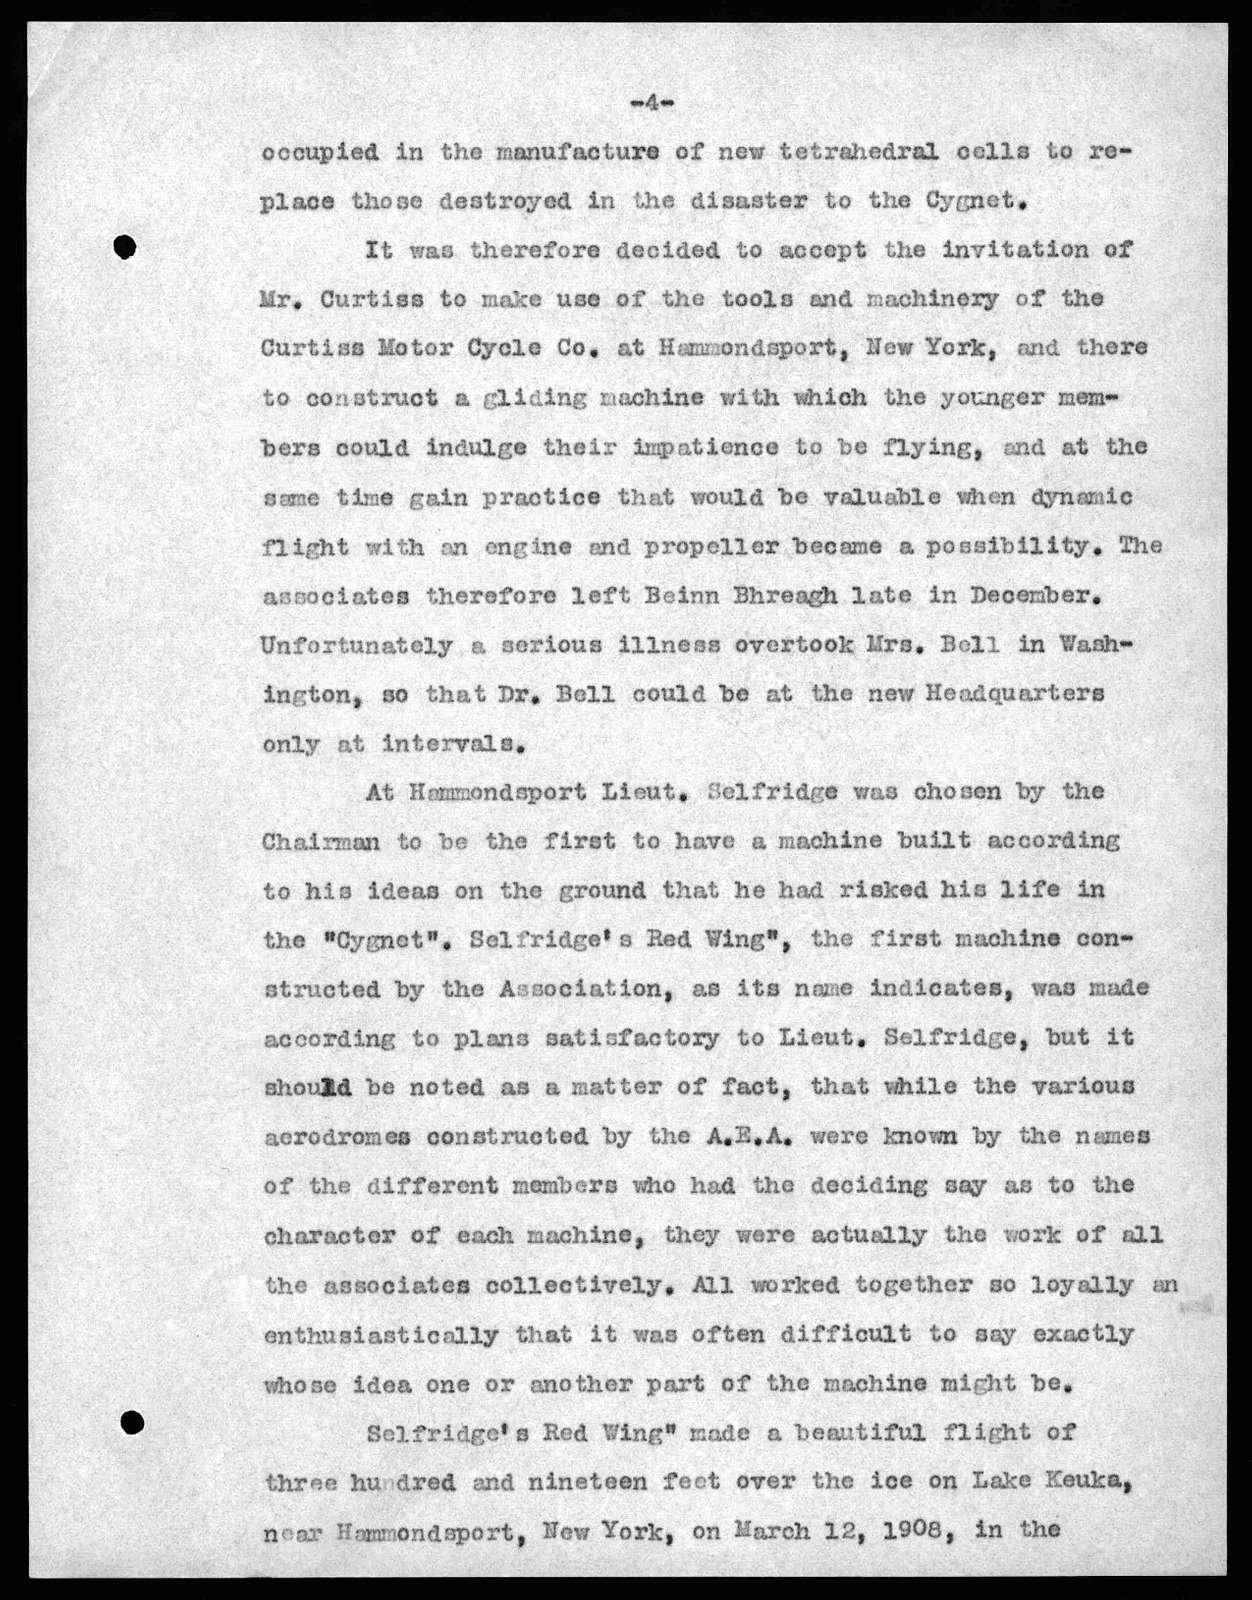 Article by Mabel Hubbard Bell, 1909